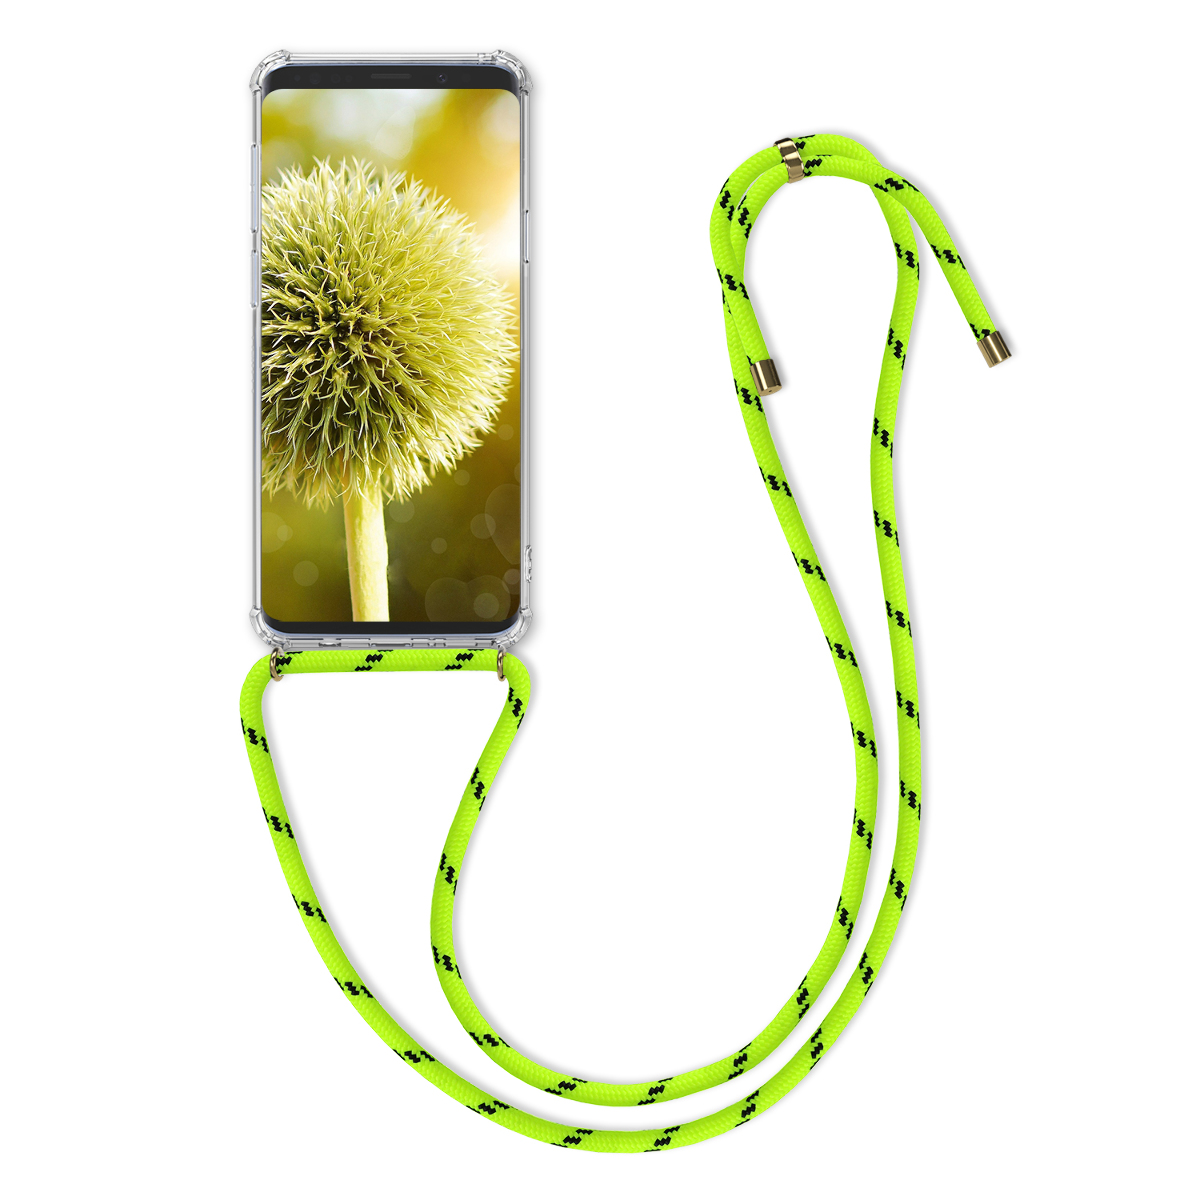 Pouzdro pro Samsung Galaxy S9 - Clear Transparent TPU Cell Phone Cover with Neck Cord Lanyard Strap - Neon Yellow / Transparent